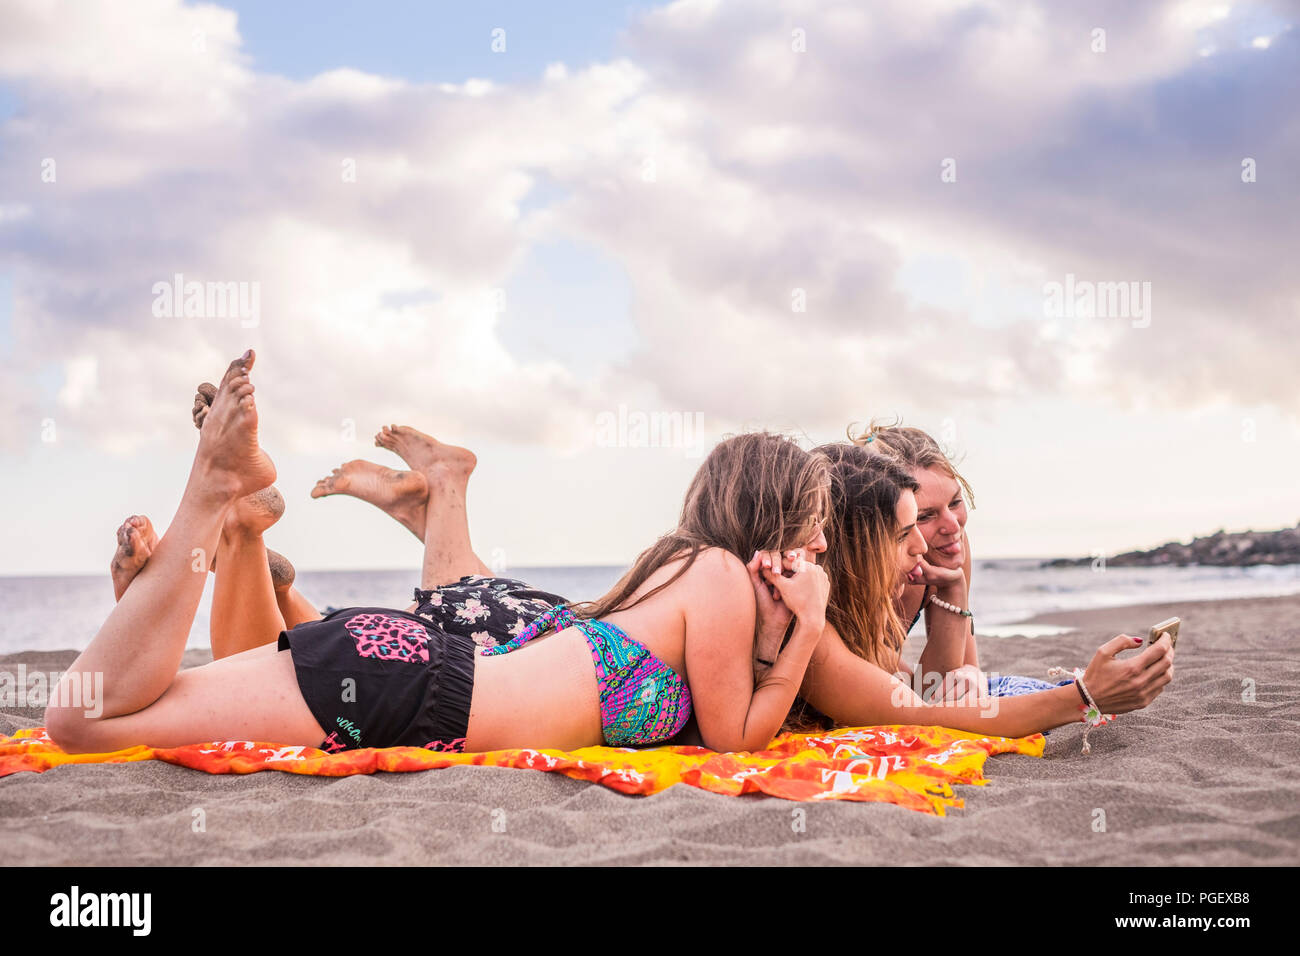 L'été, vacances, congés, de la technologie et de bonheur concept - group of smiling people with sunglasses taking picture with smartphone sur plage. happin Photo Stock